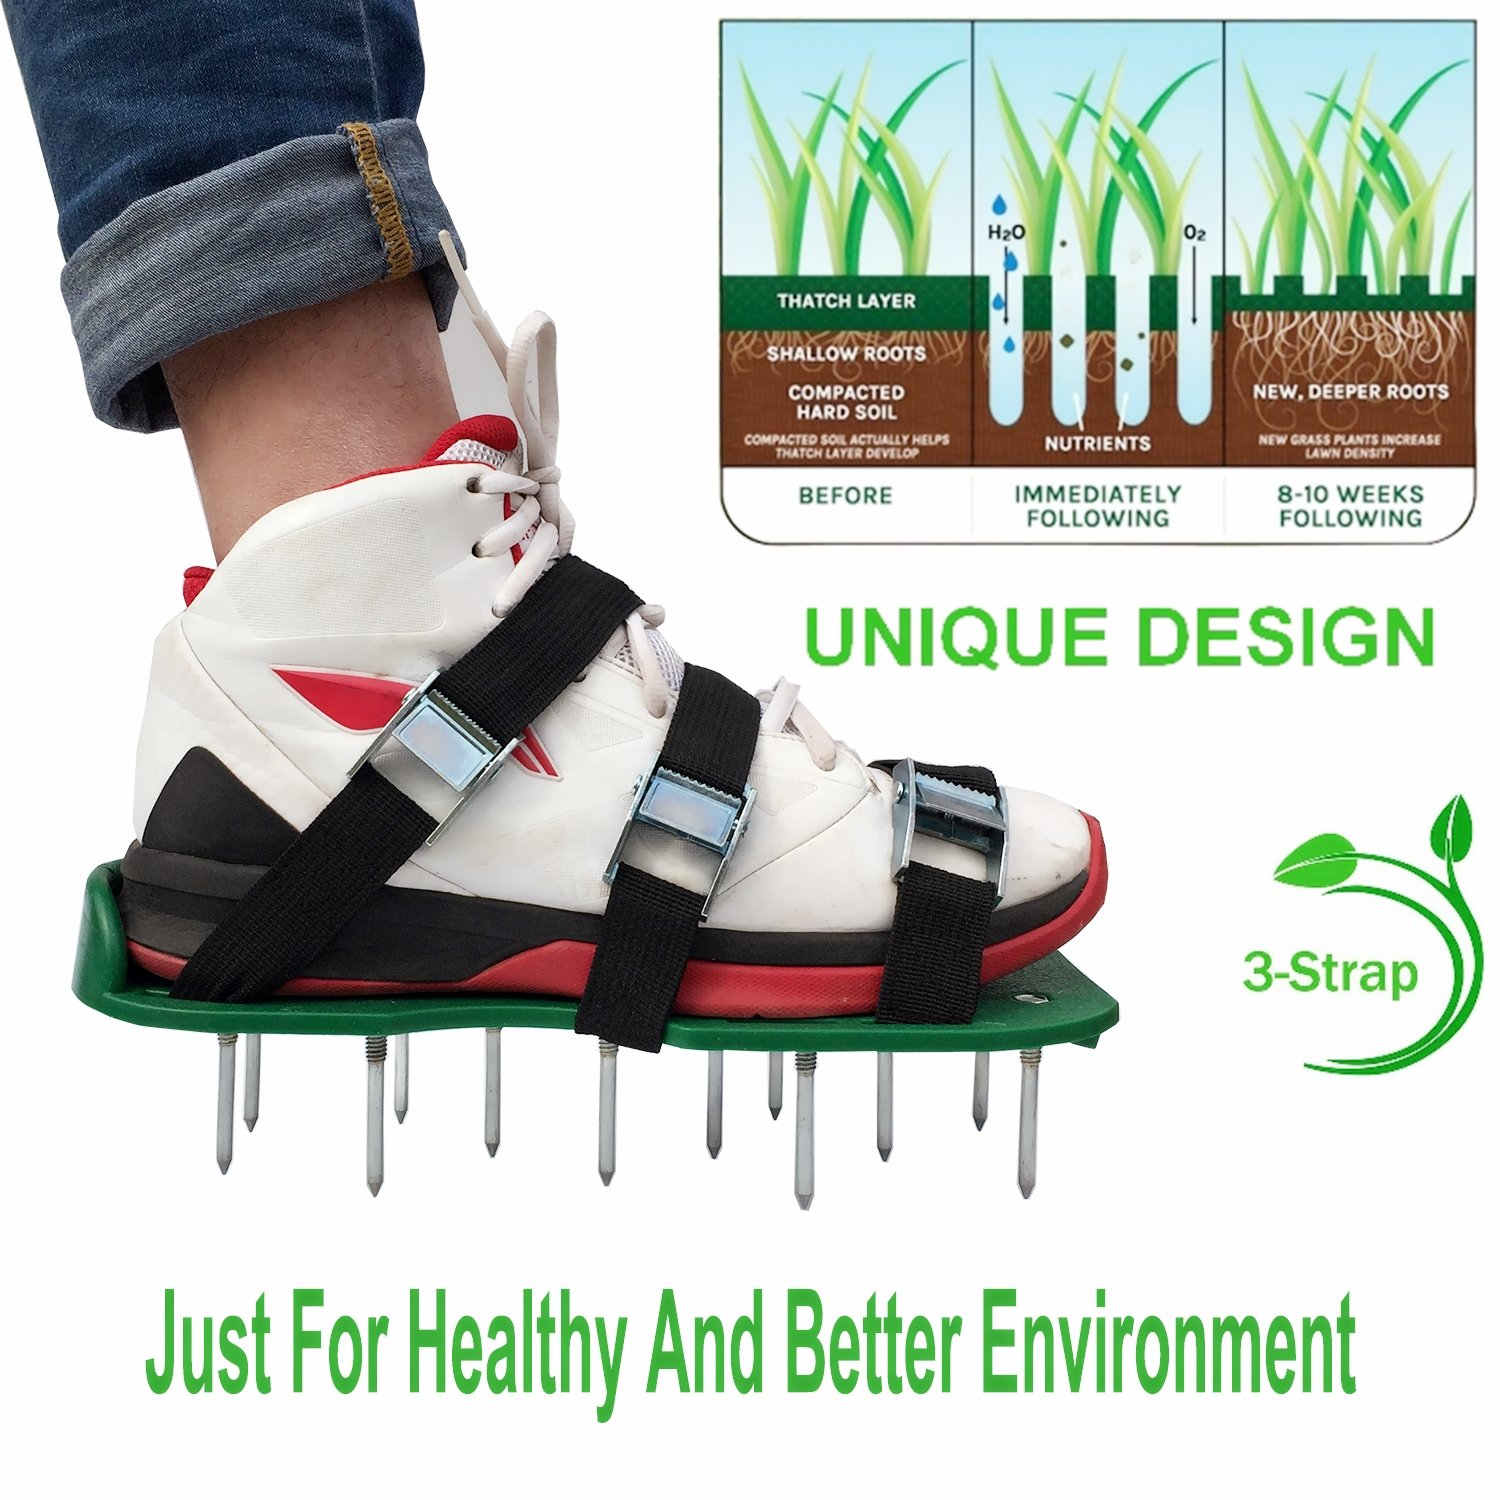 Nate's Time Lawn Aerator Shoes, 3 Adjustable Straps and Metal Buckles,Universal Size that Fits all,For a Greener and Healthier Lawn or Yard and Garden .Ready for aerating your roots & grass